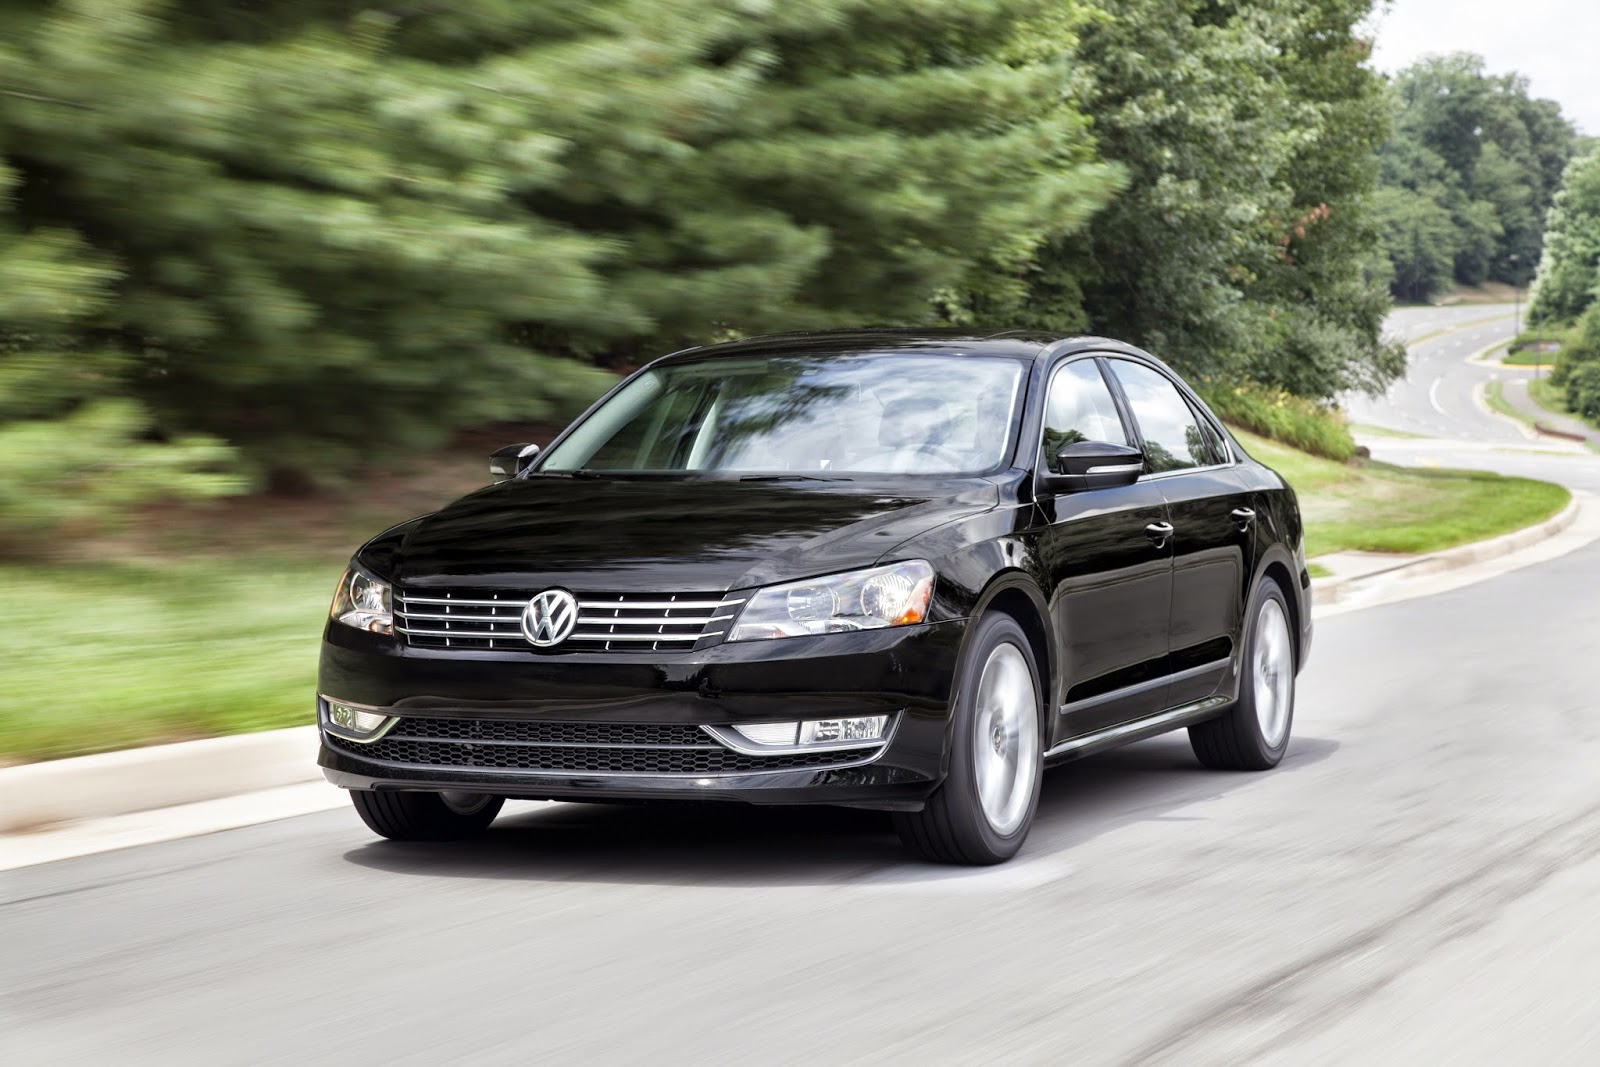 Front 3/4 view of 2014 Volkswagen Passat